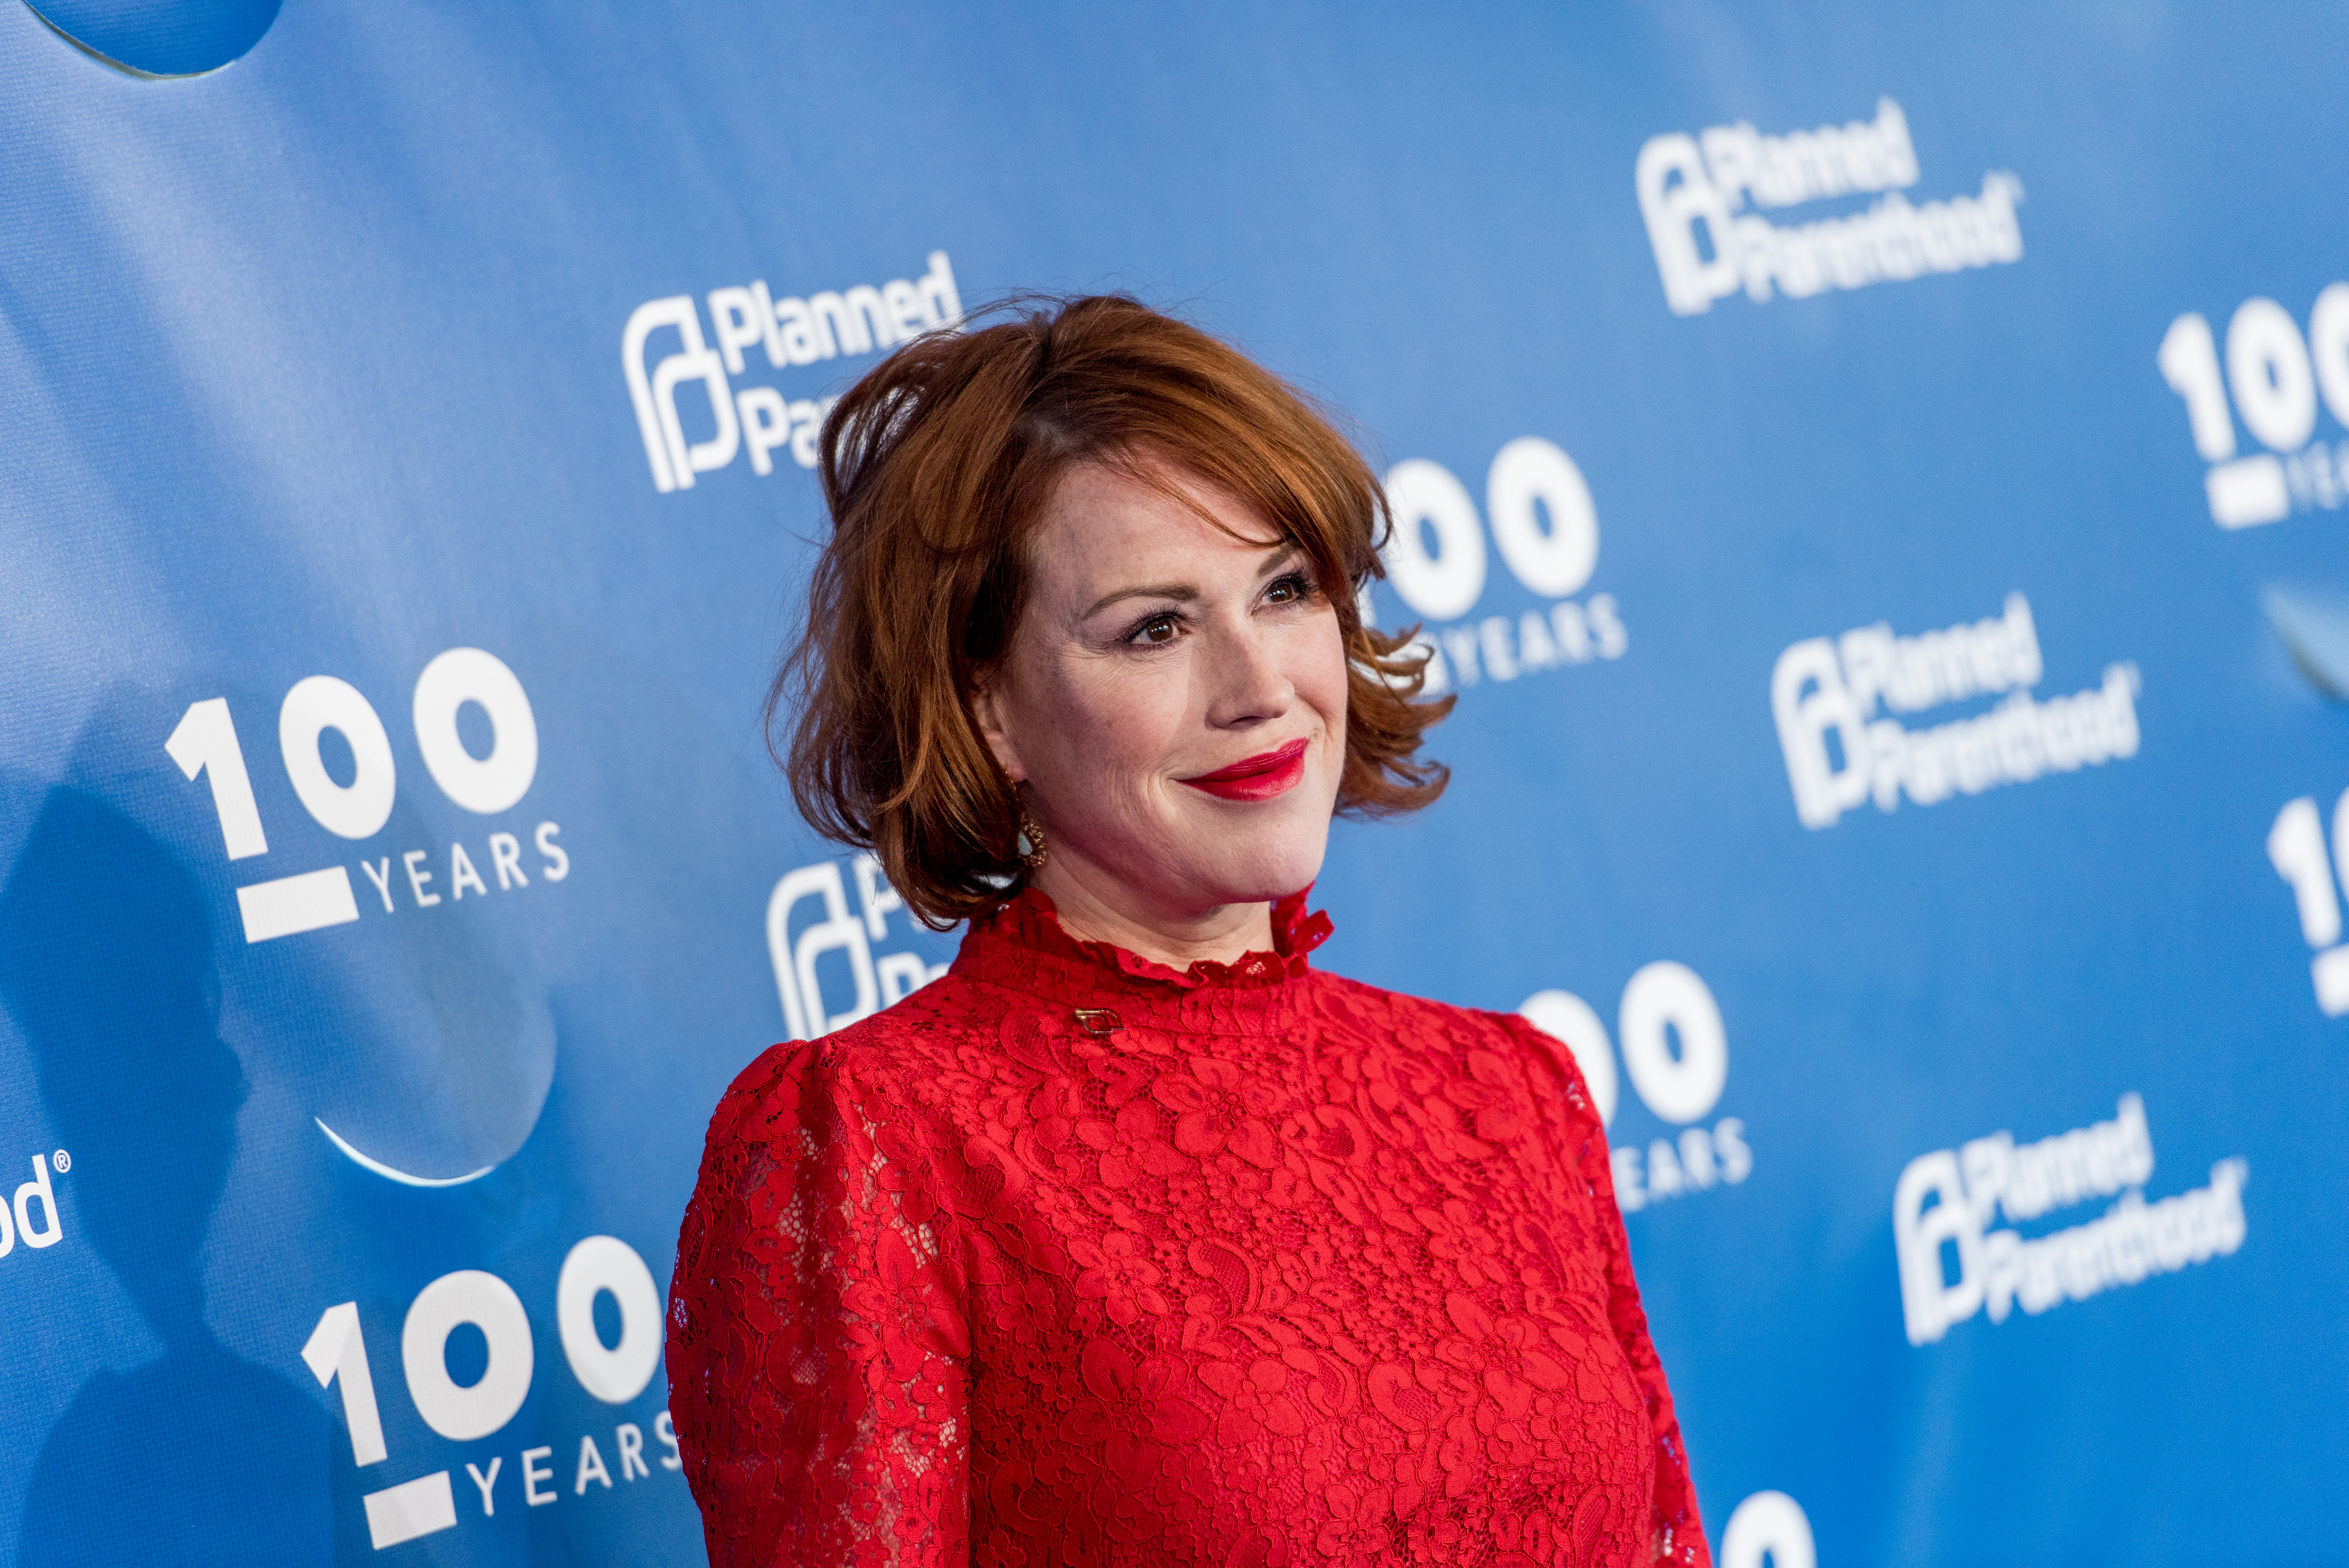 Molly Ringwald attends the Planned Parenthood 100th Anniversary Gala at Pier 36 on May 2, 2017 in New York City.